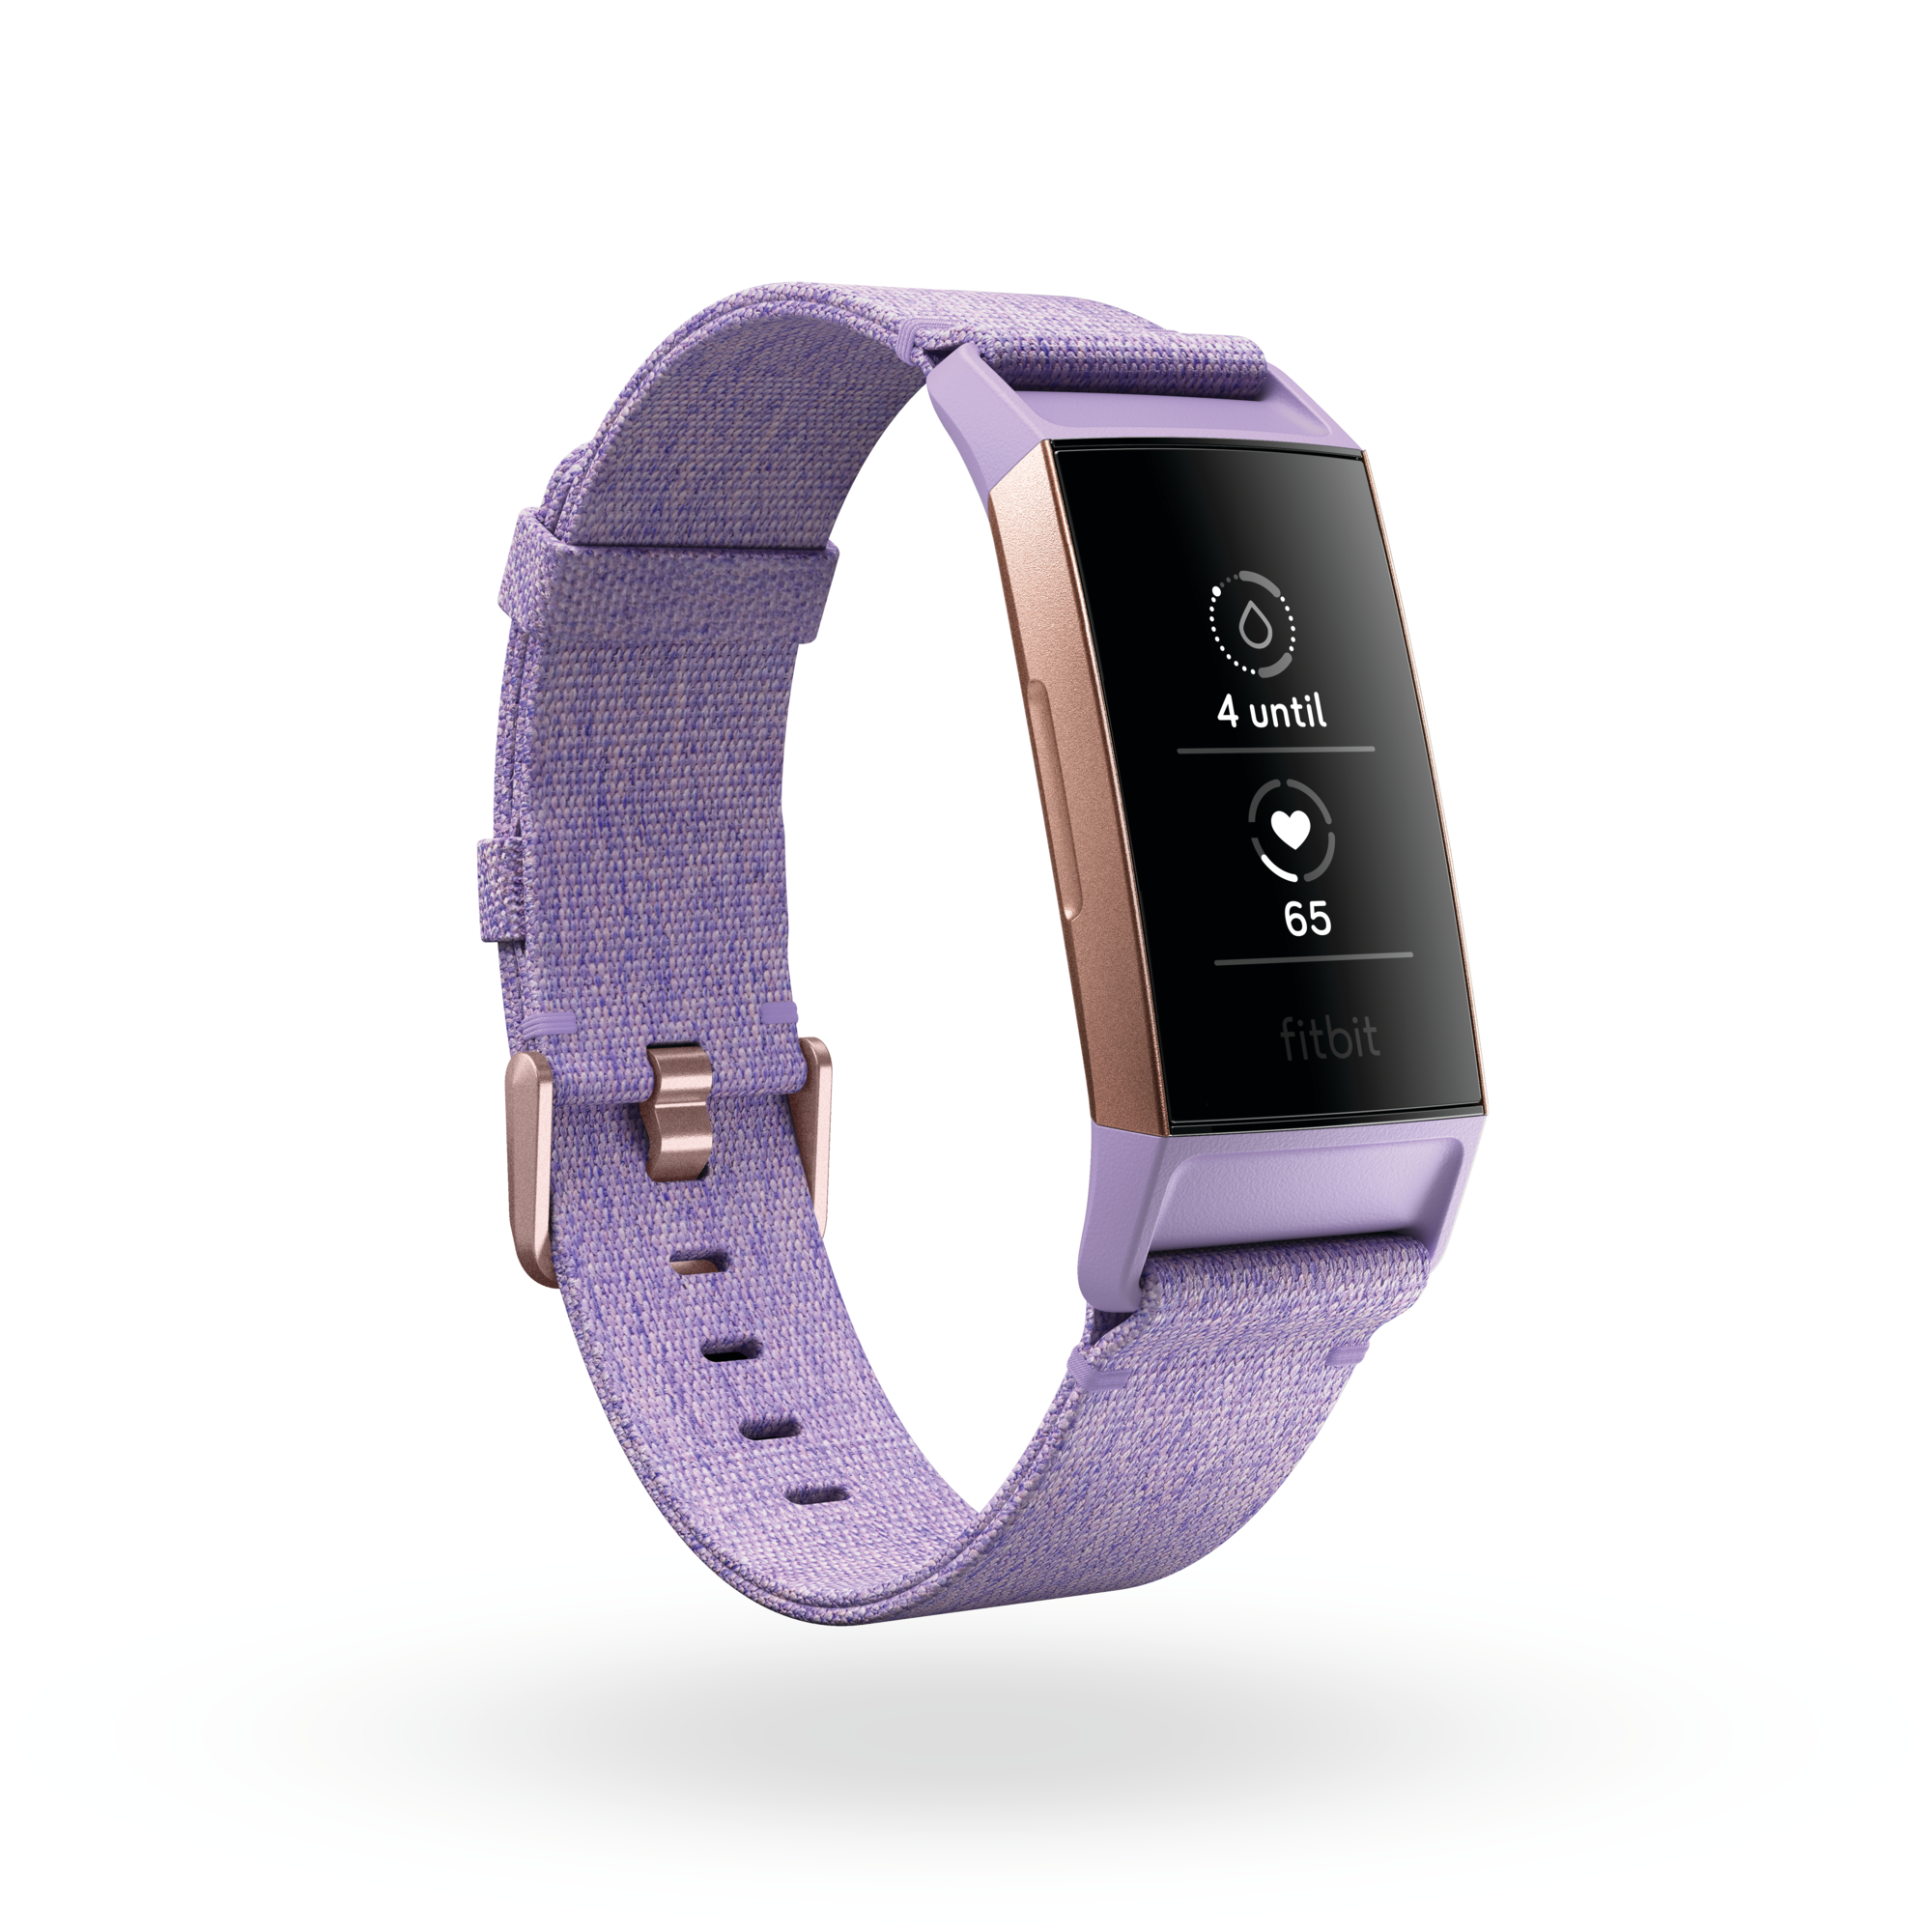 Fitbit Charge 3™ – Bulk – Invite Fitness